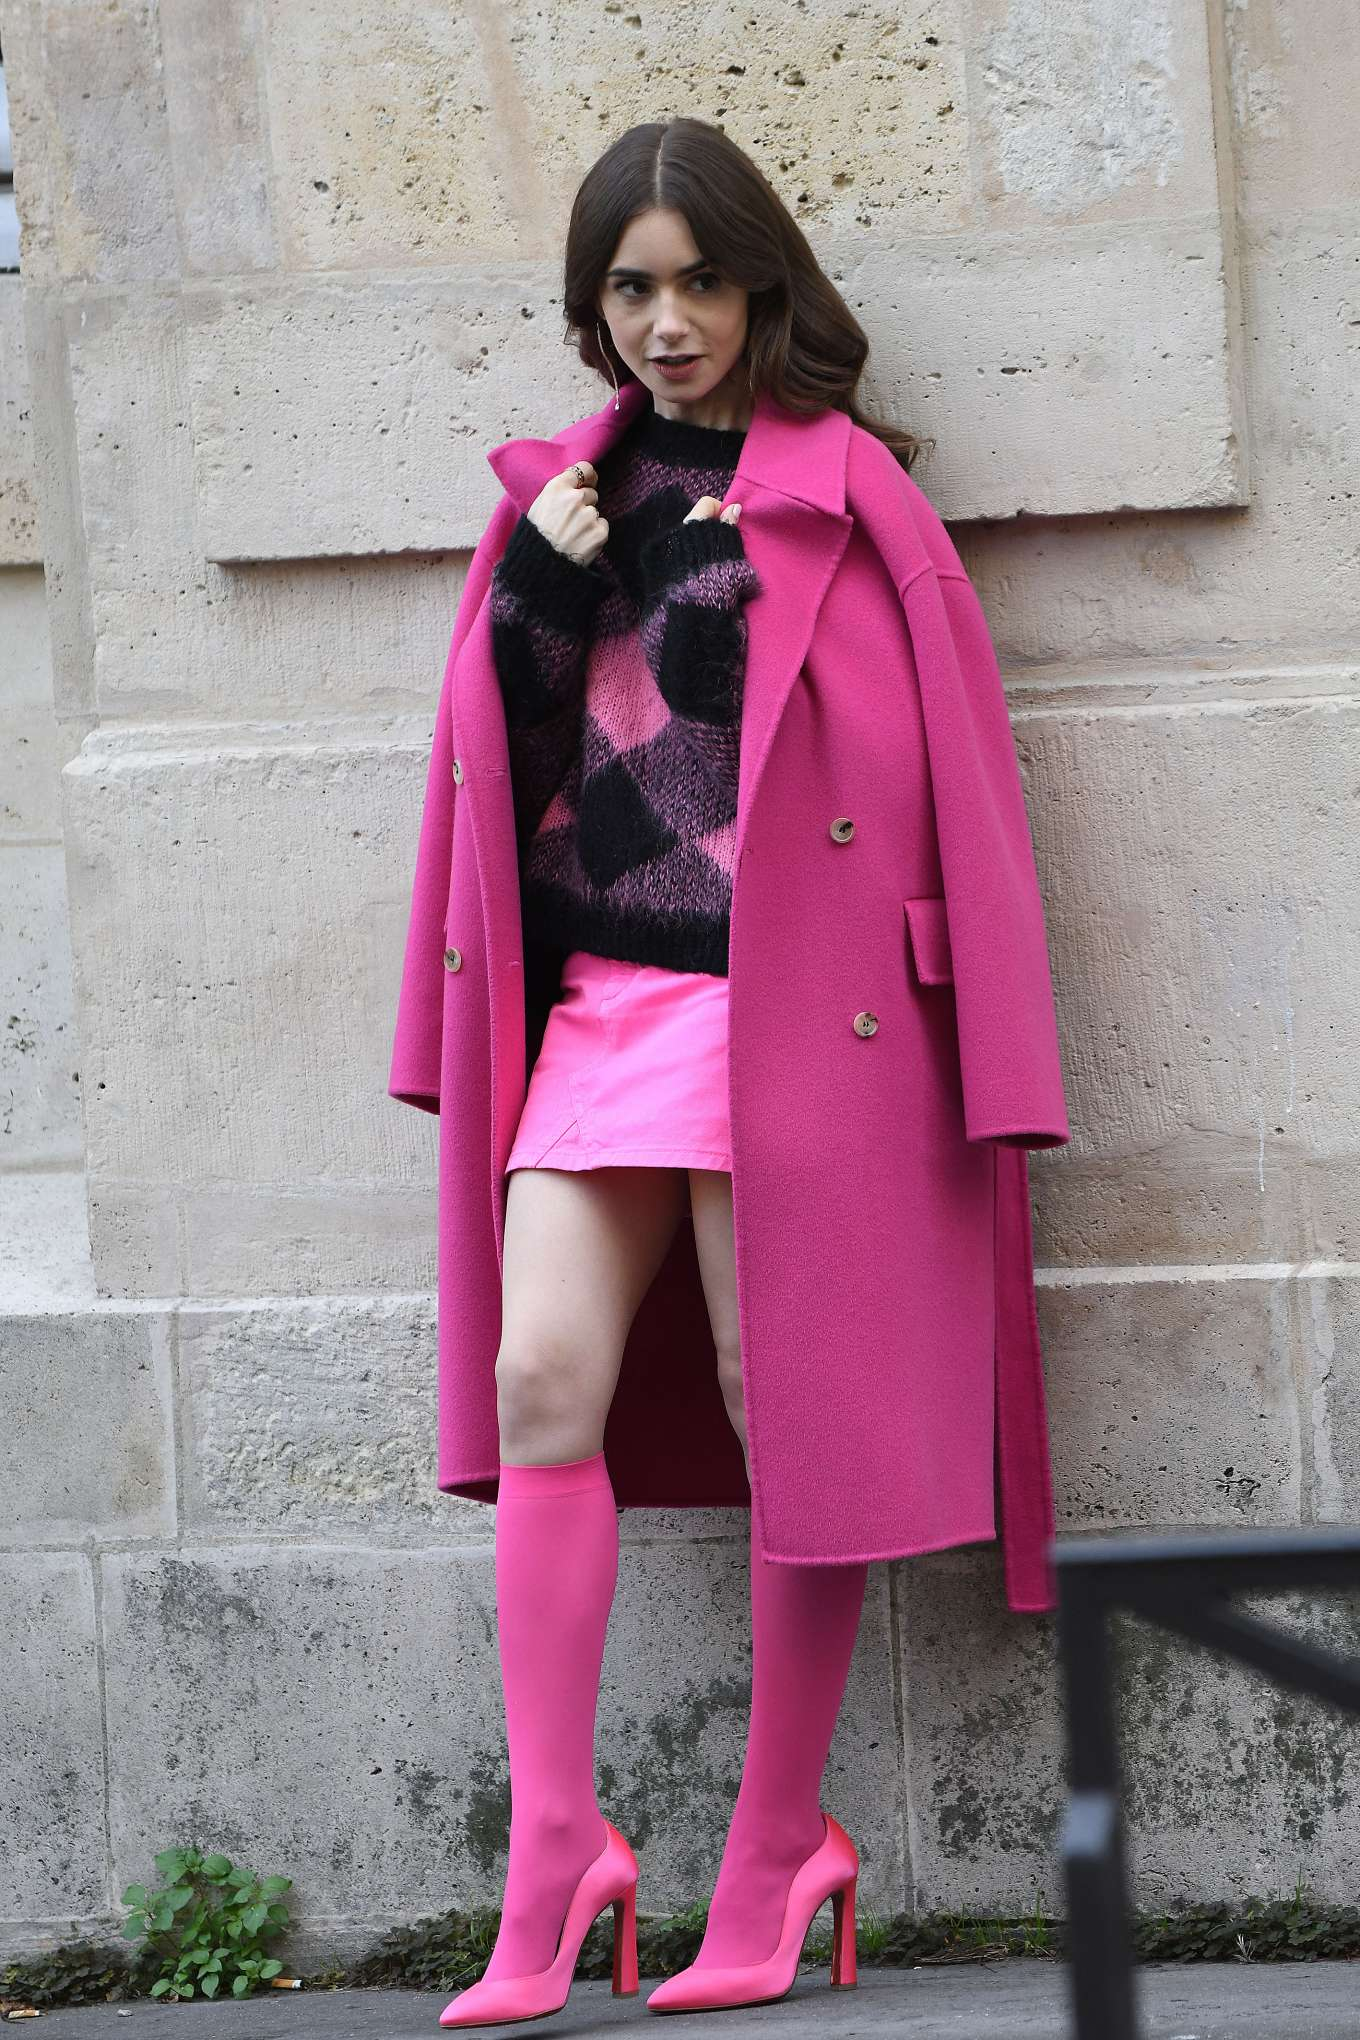 Lily Collins in Pink - On the set of 'Emily in Paris' in Paris